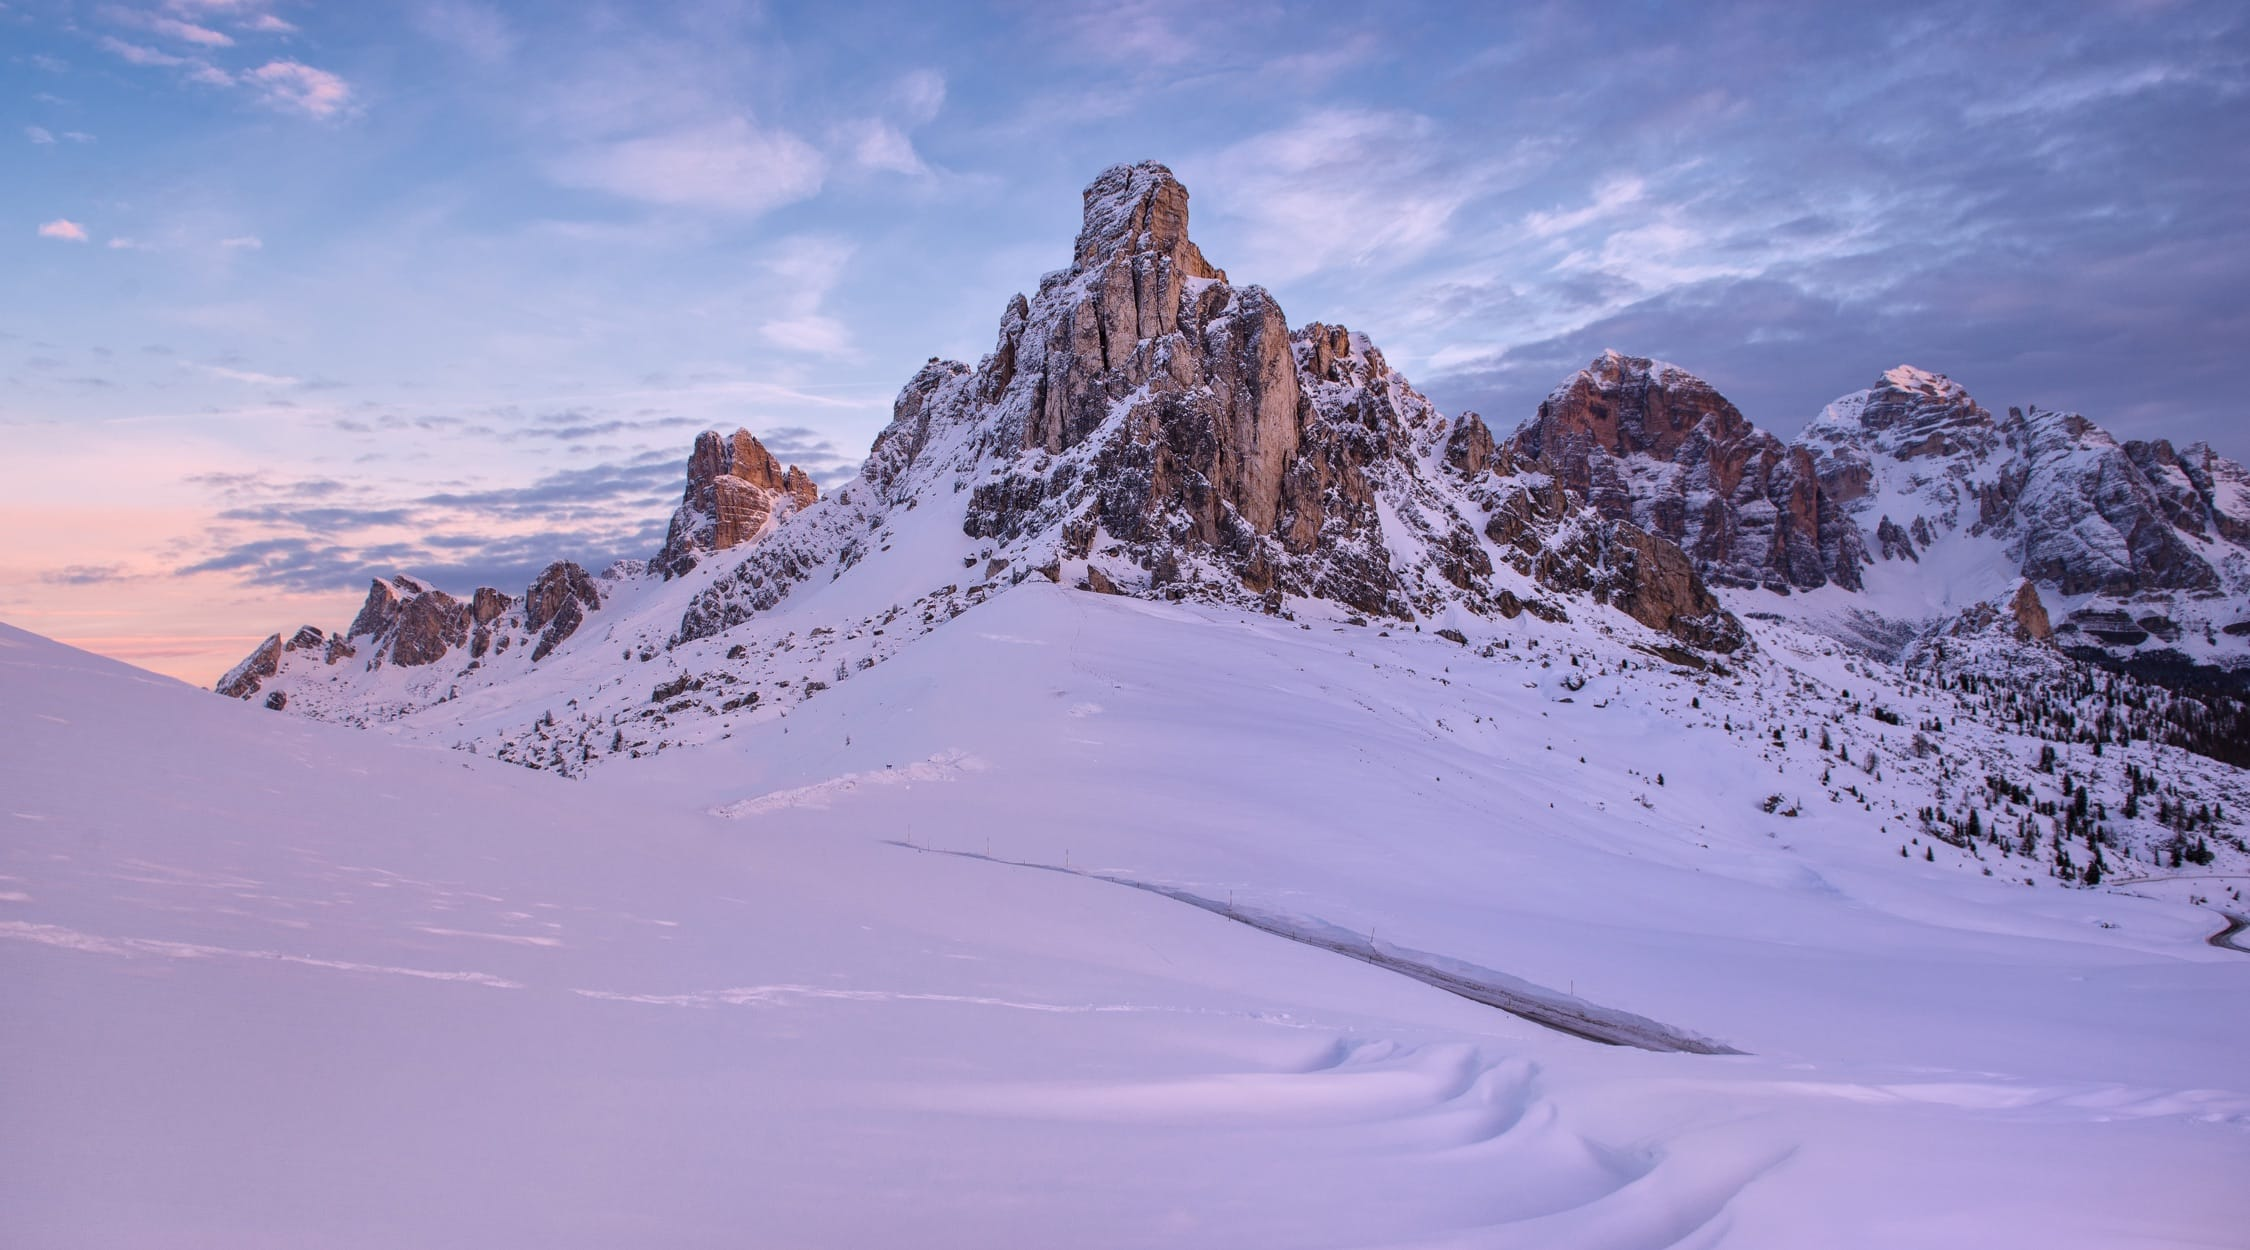 The Passo Gaiu in winter